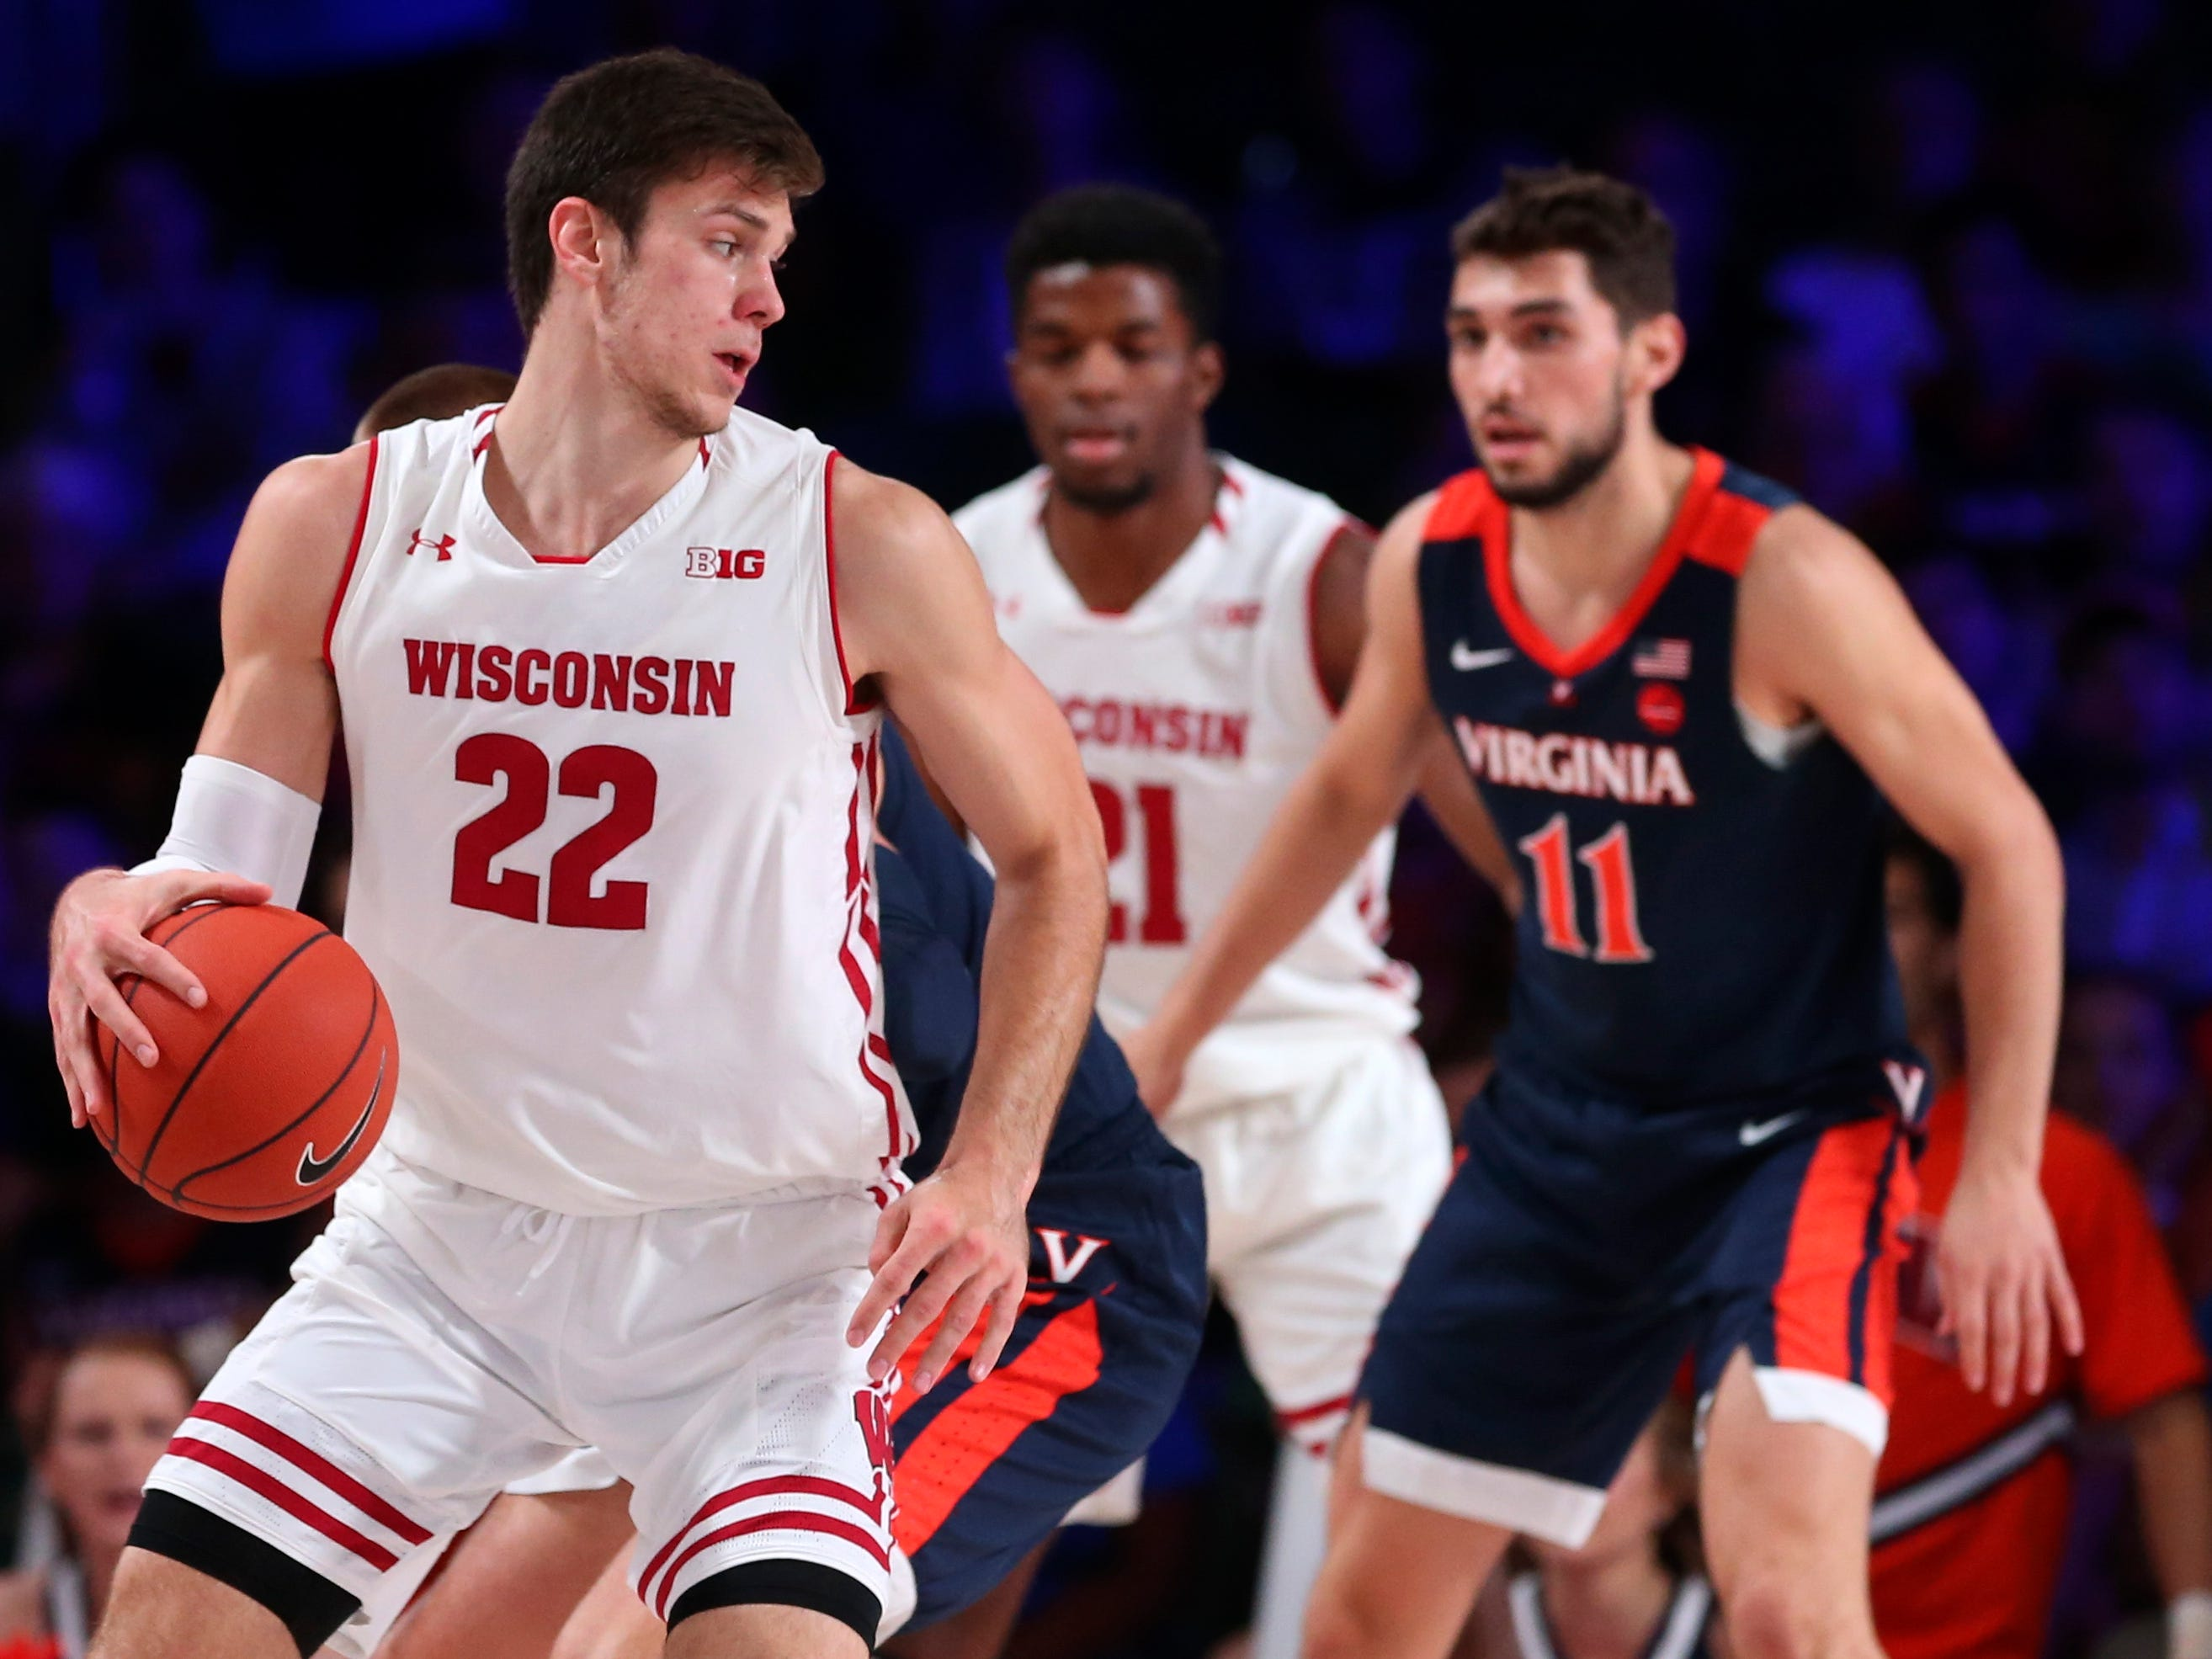 Badgers forward Ethan Happ tries to get past Virginia's Ty Jerome.